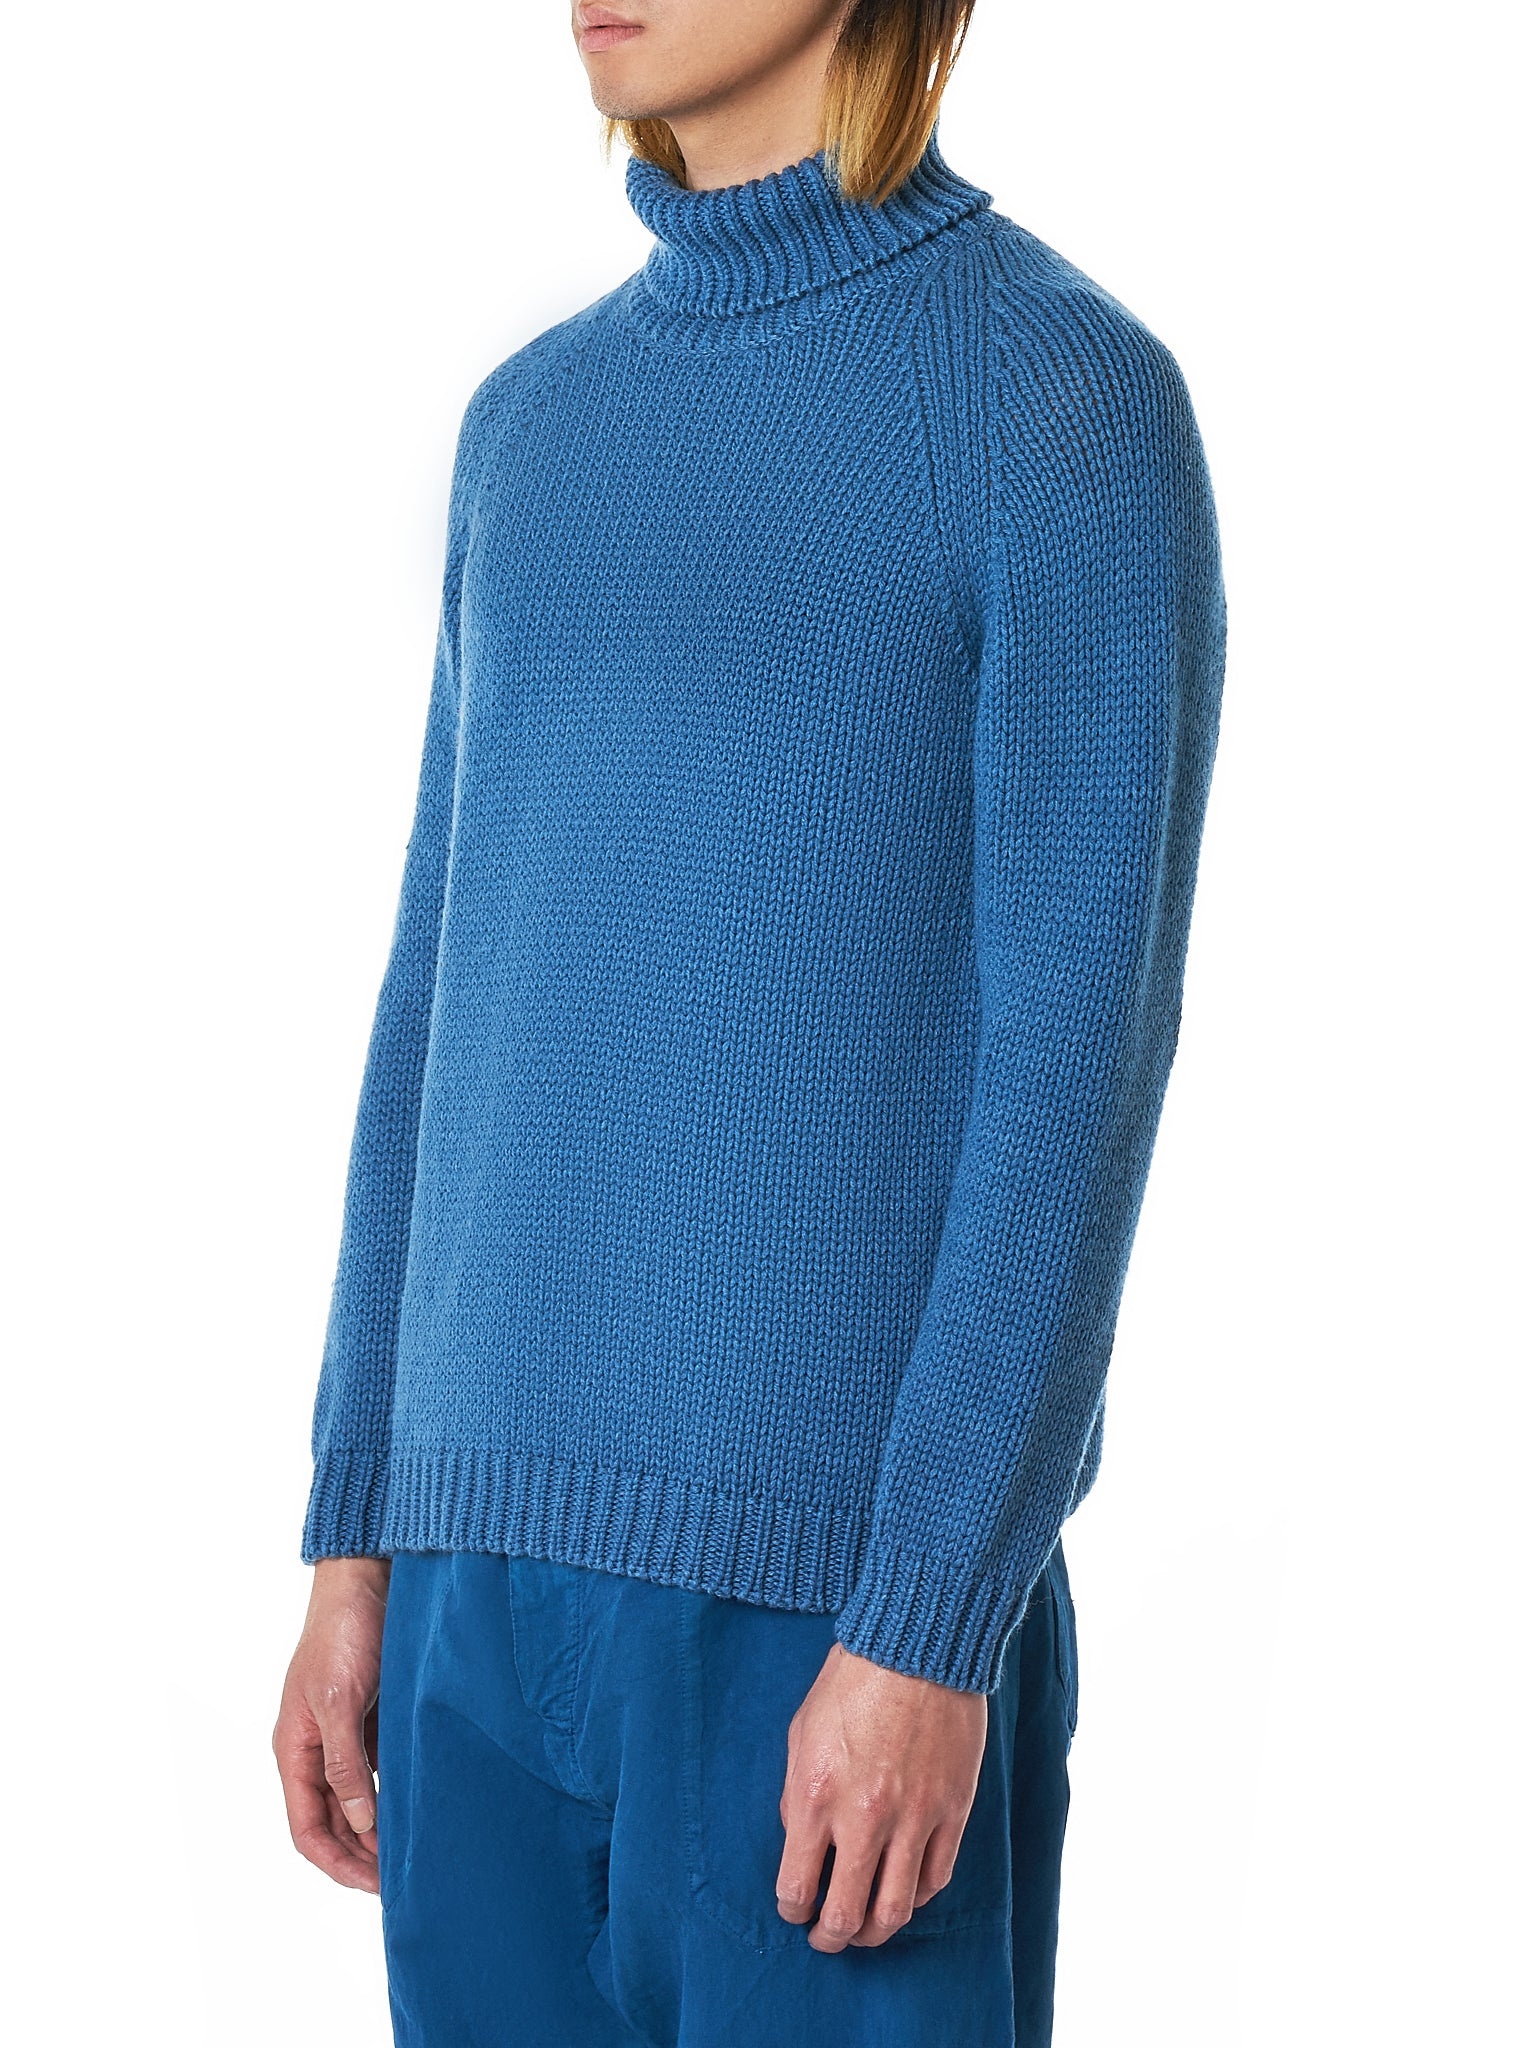 Bleu de Cocagne Turtleneck Sweater - Hlorenzo Side